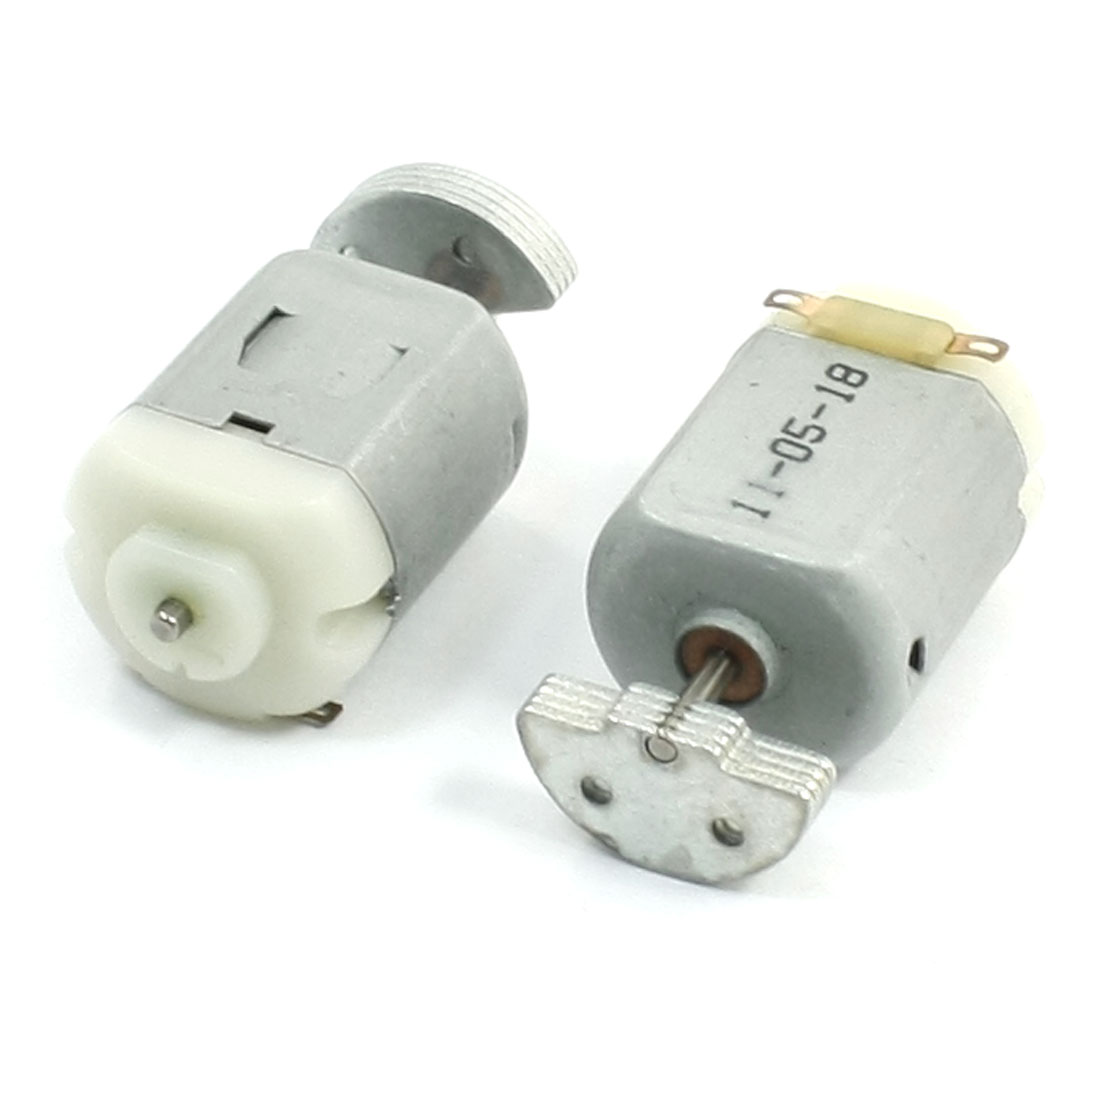 2pcs-D-Shape-Shaft-5200R-min-Speed-Micro-Vibrating-Vibration-Motor-DC-3V